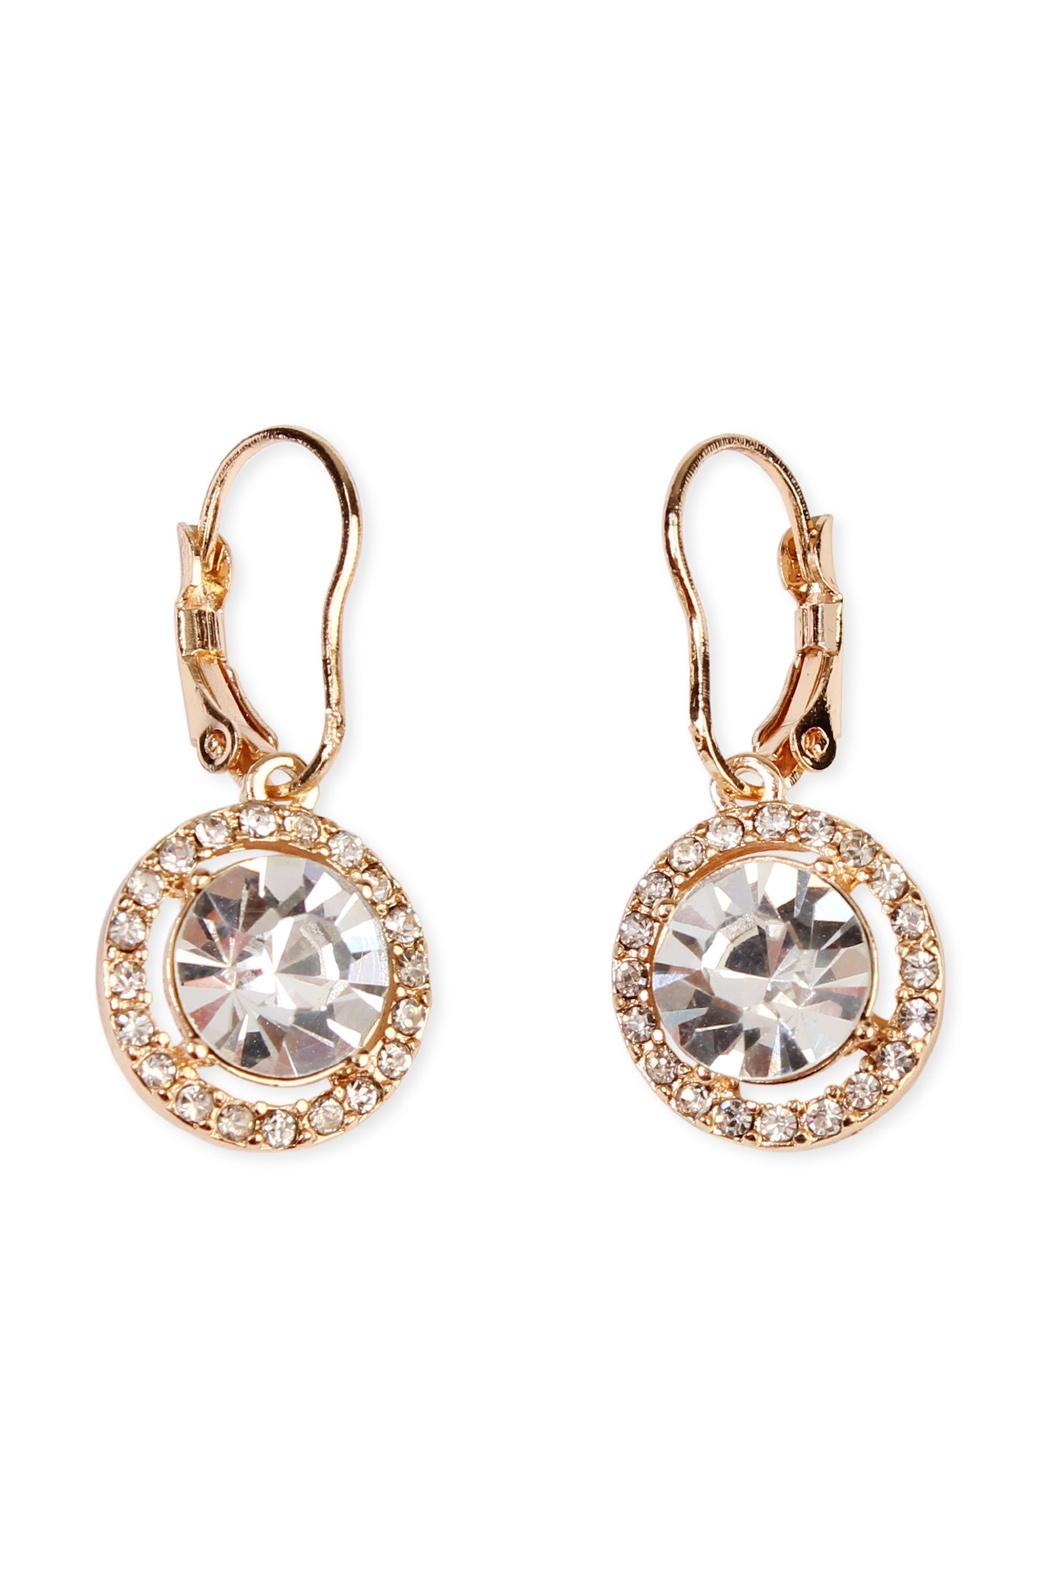 Riah Fashion Round-Lever Back Crystal-Earrings - Main Image